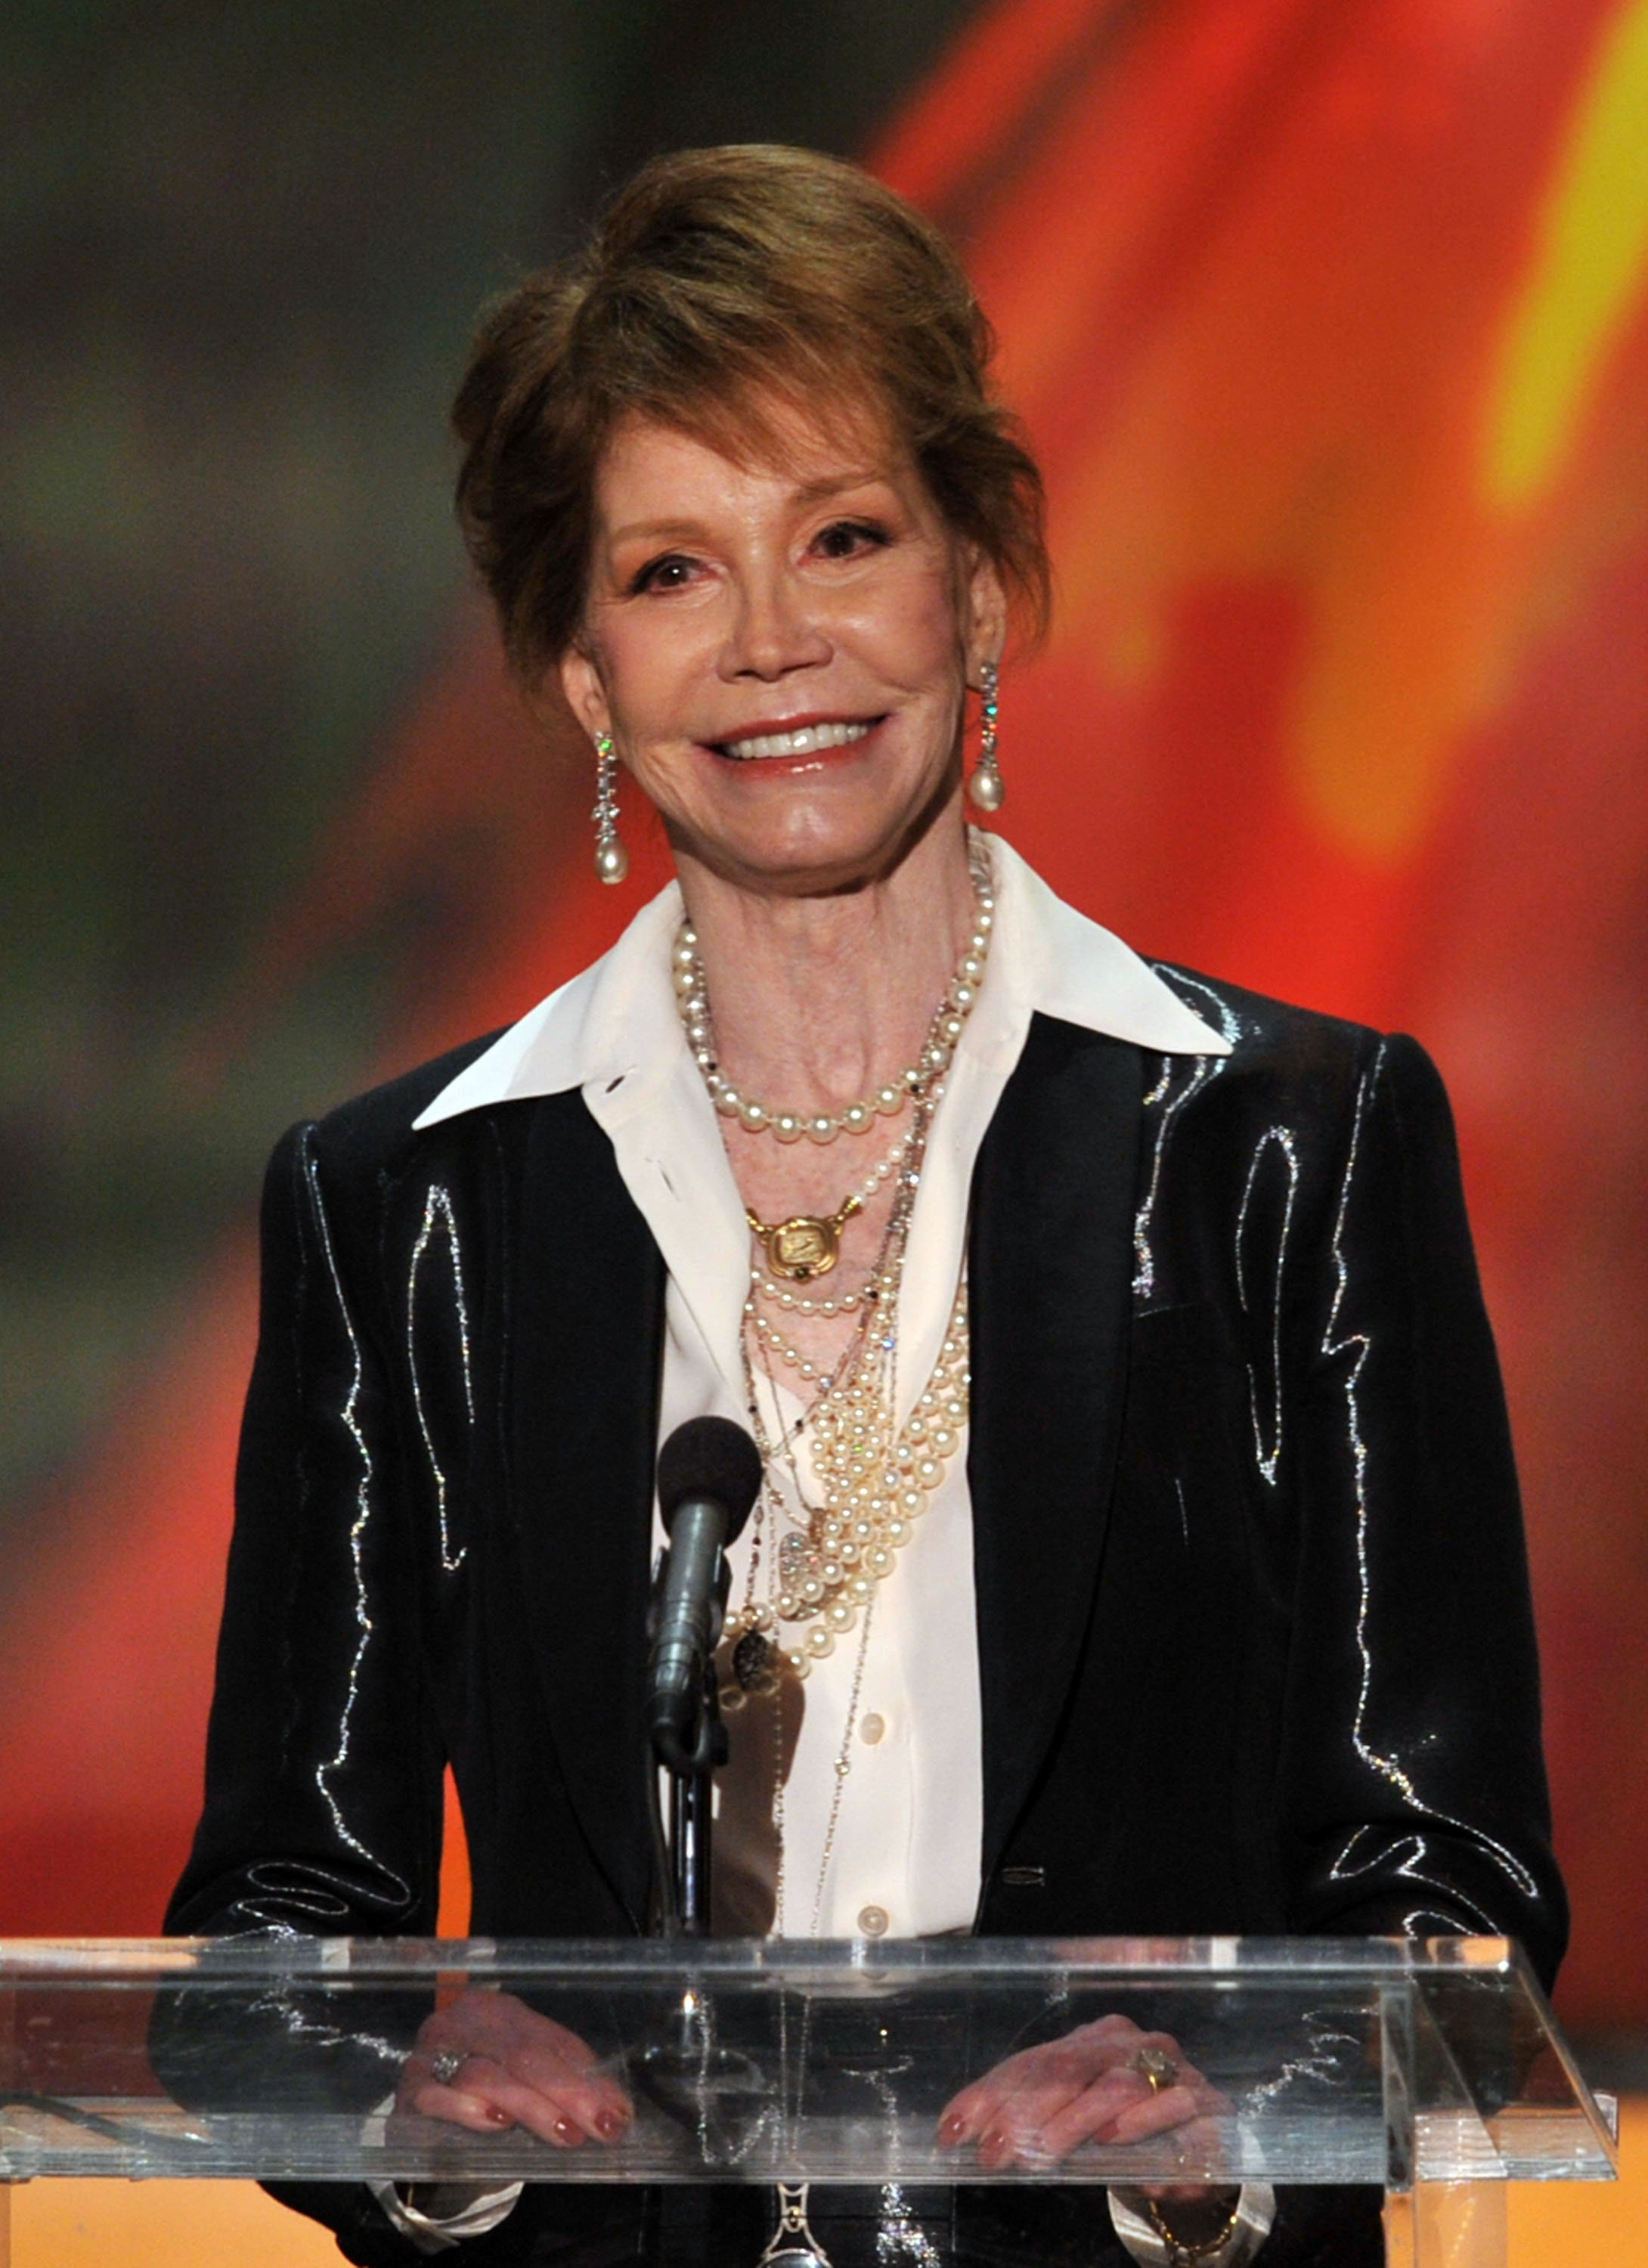 Mary Tyler Moore accepts the Life Achievement Award onstage during the 18th Annual Screen Actors Guild Awards at The Shrine Auditorium on January 29, 2012, in Los Angeles, California. | Source: Getty Images.